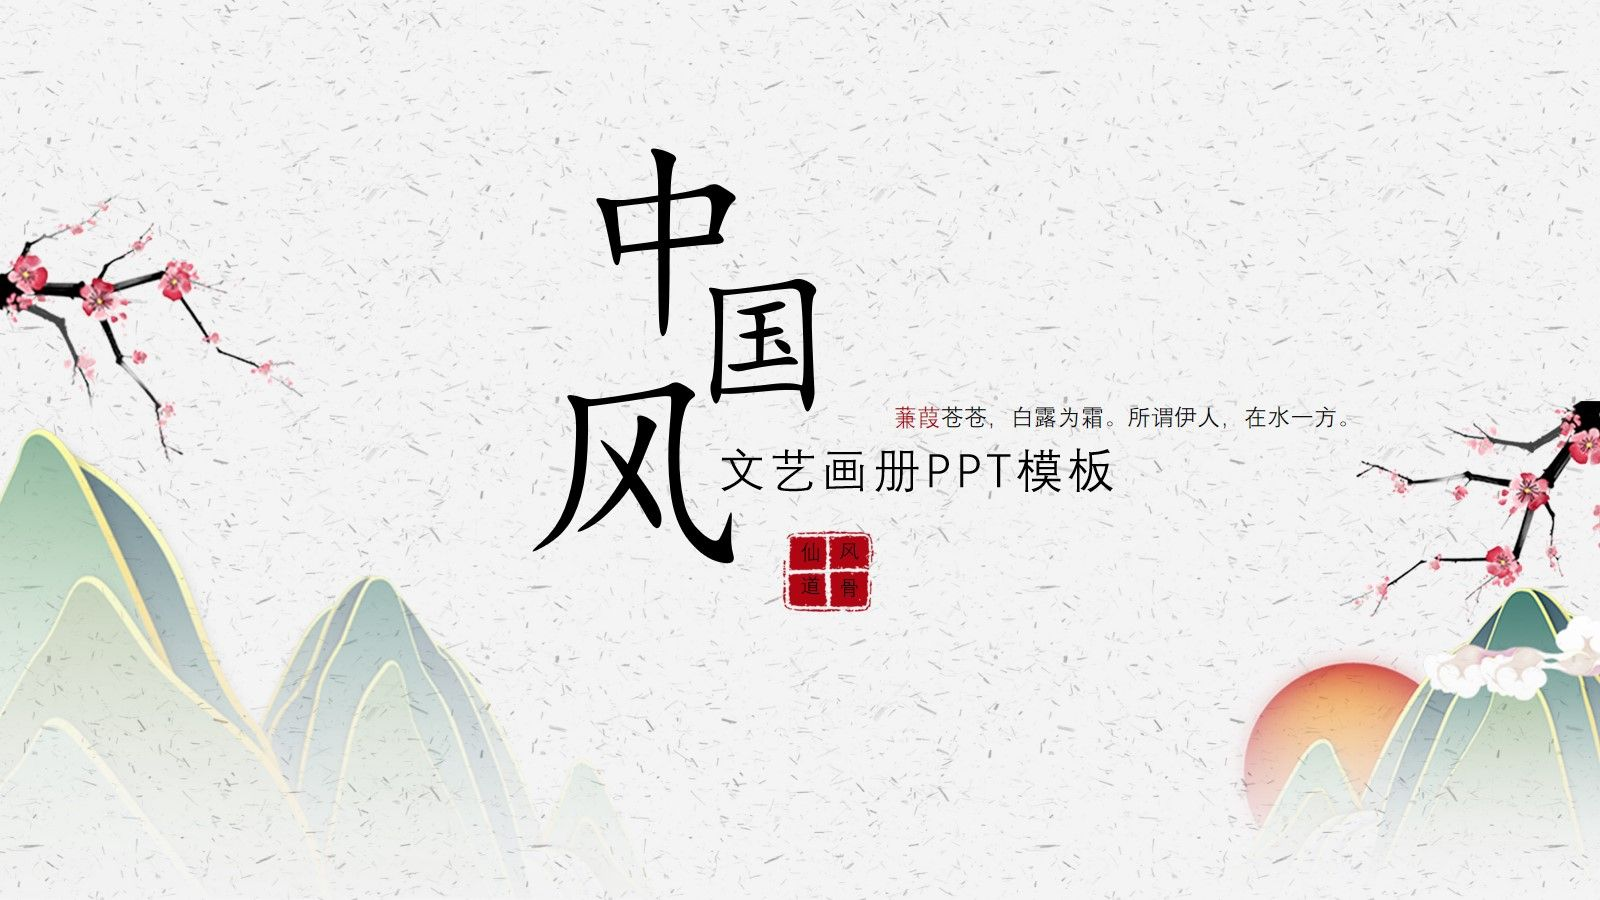 Chinese Style Art Album Ppt Templates Free Powerpoint Templates And Google Slides Themes Slideshow Powerpoint Template Free Powerpoint Templates Powerpoint